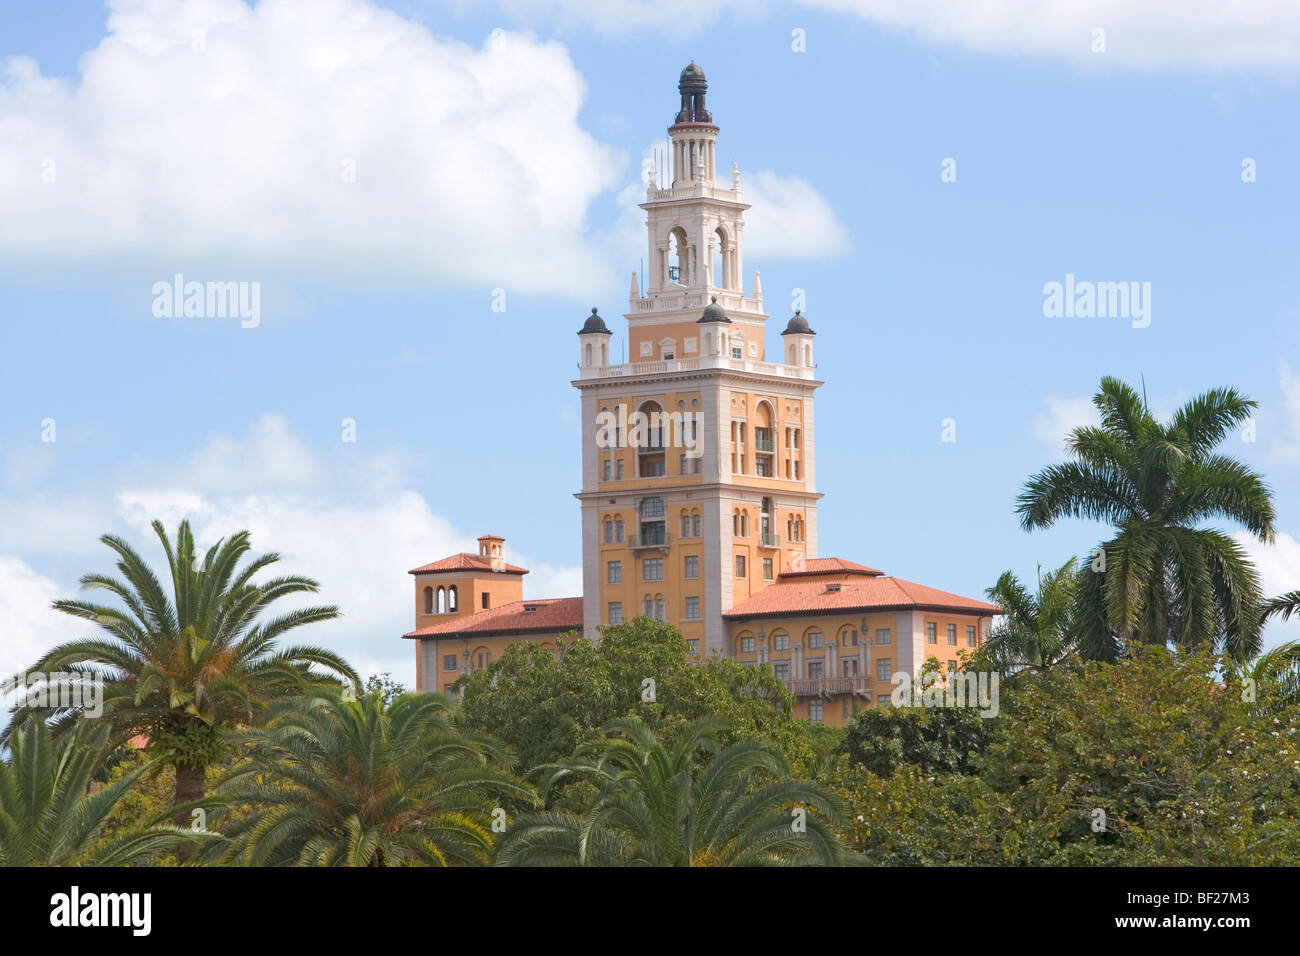 The tower of the Biltmore Hotel above tree tops, Miami, Florida, USA - Stock Image